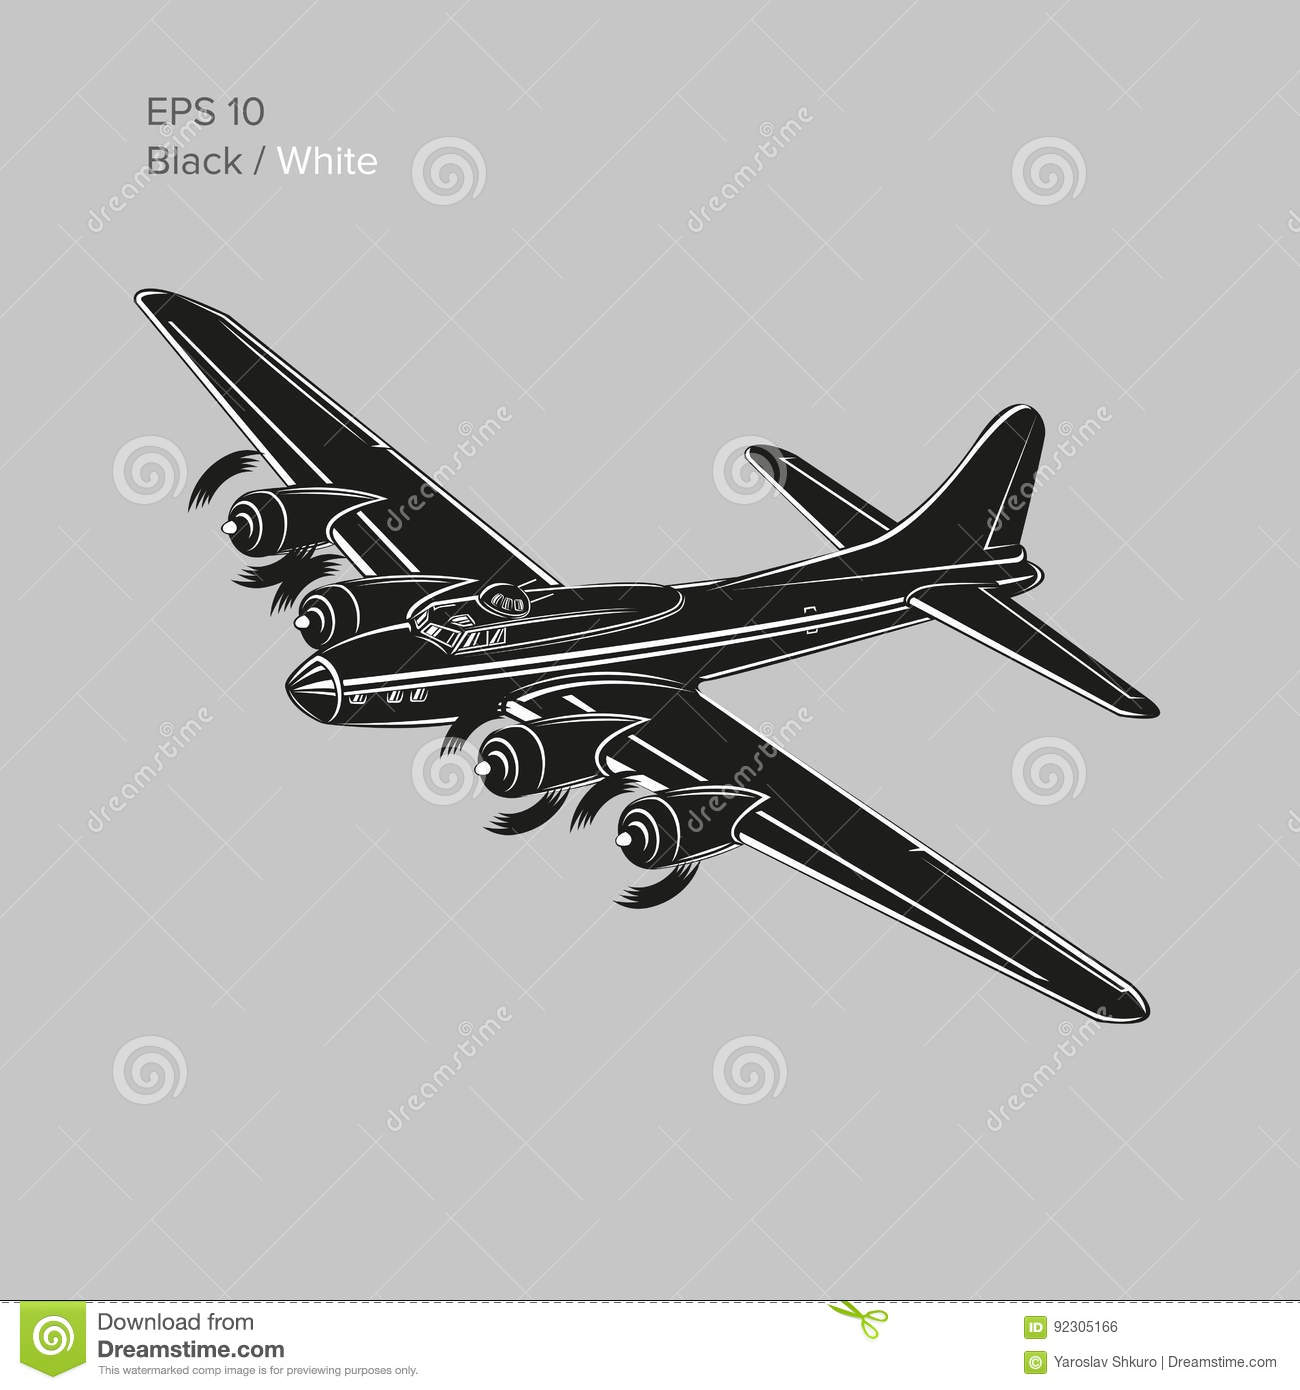 airplane aircraft posters and diagramspiston engines in 2018. Black Bedroom Furniture Sets. Home Design Ideas